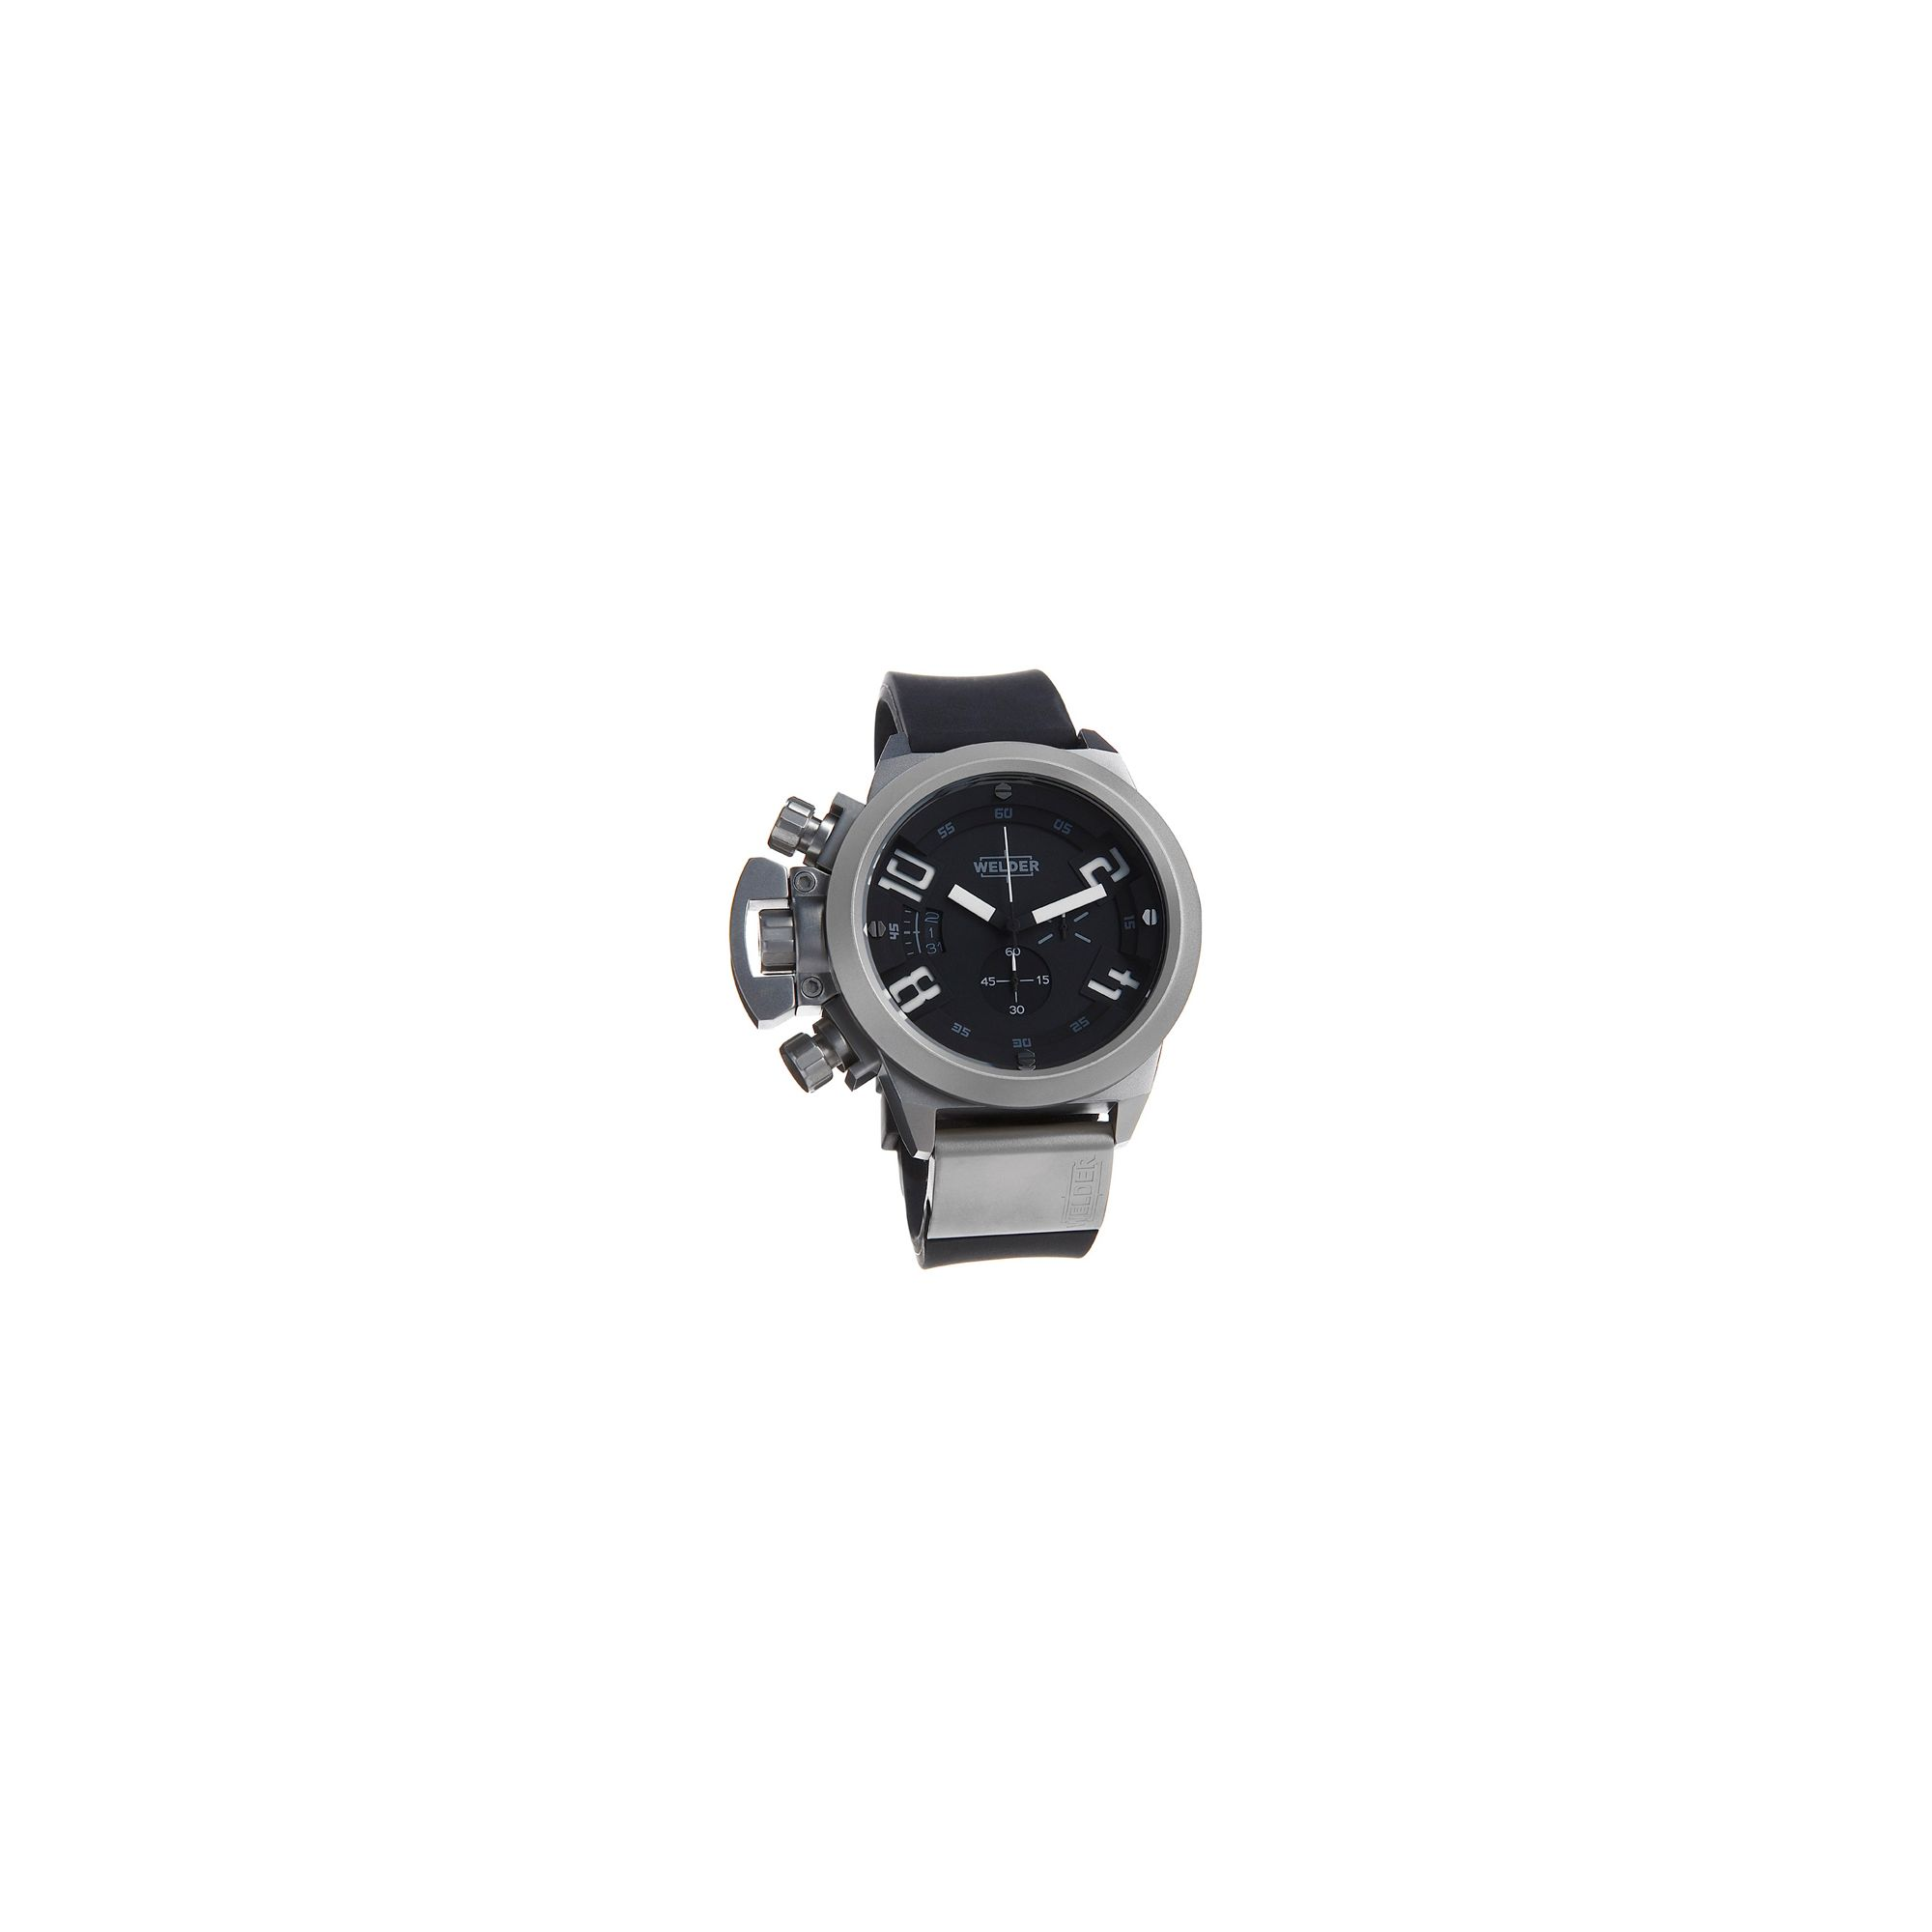 Welder Gents Black Dial Black Rubber Strap Chronograph Watch K24-3200 at Tesco Direct